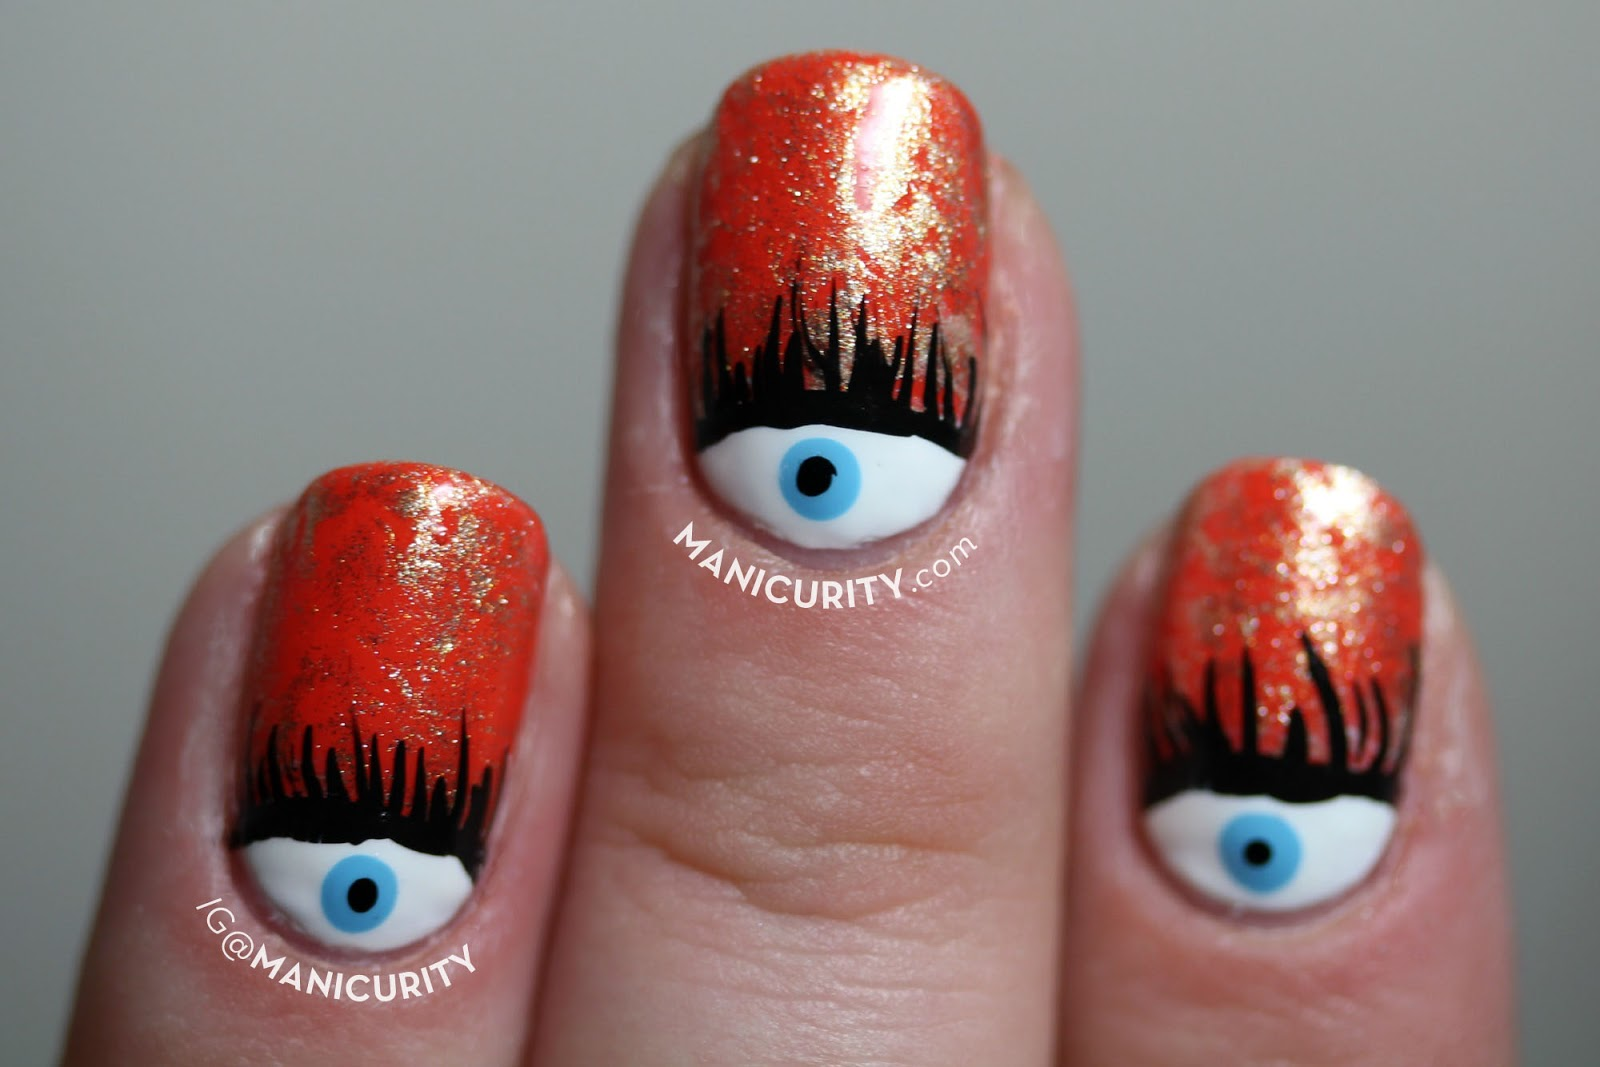 The Digit-al Dozen does The Terrific Twos! Celebrating our 2nd Anniversary with a freehand evil eye half moon manicure with saran wrap background | Manicurity.com @emmathea